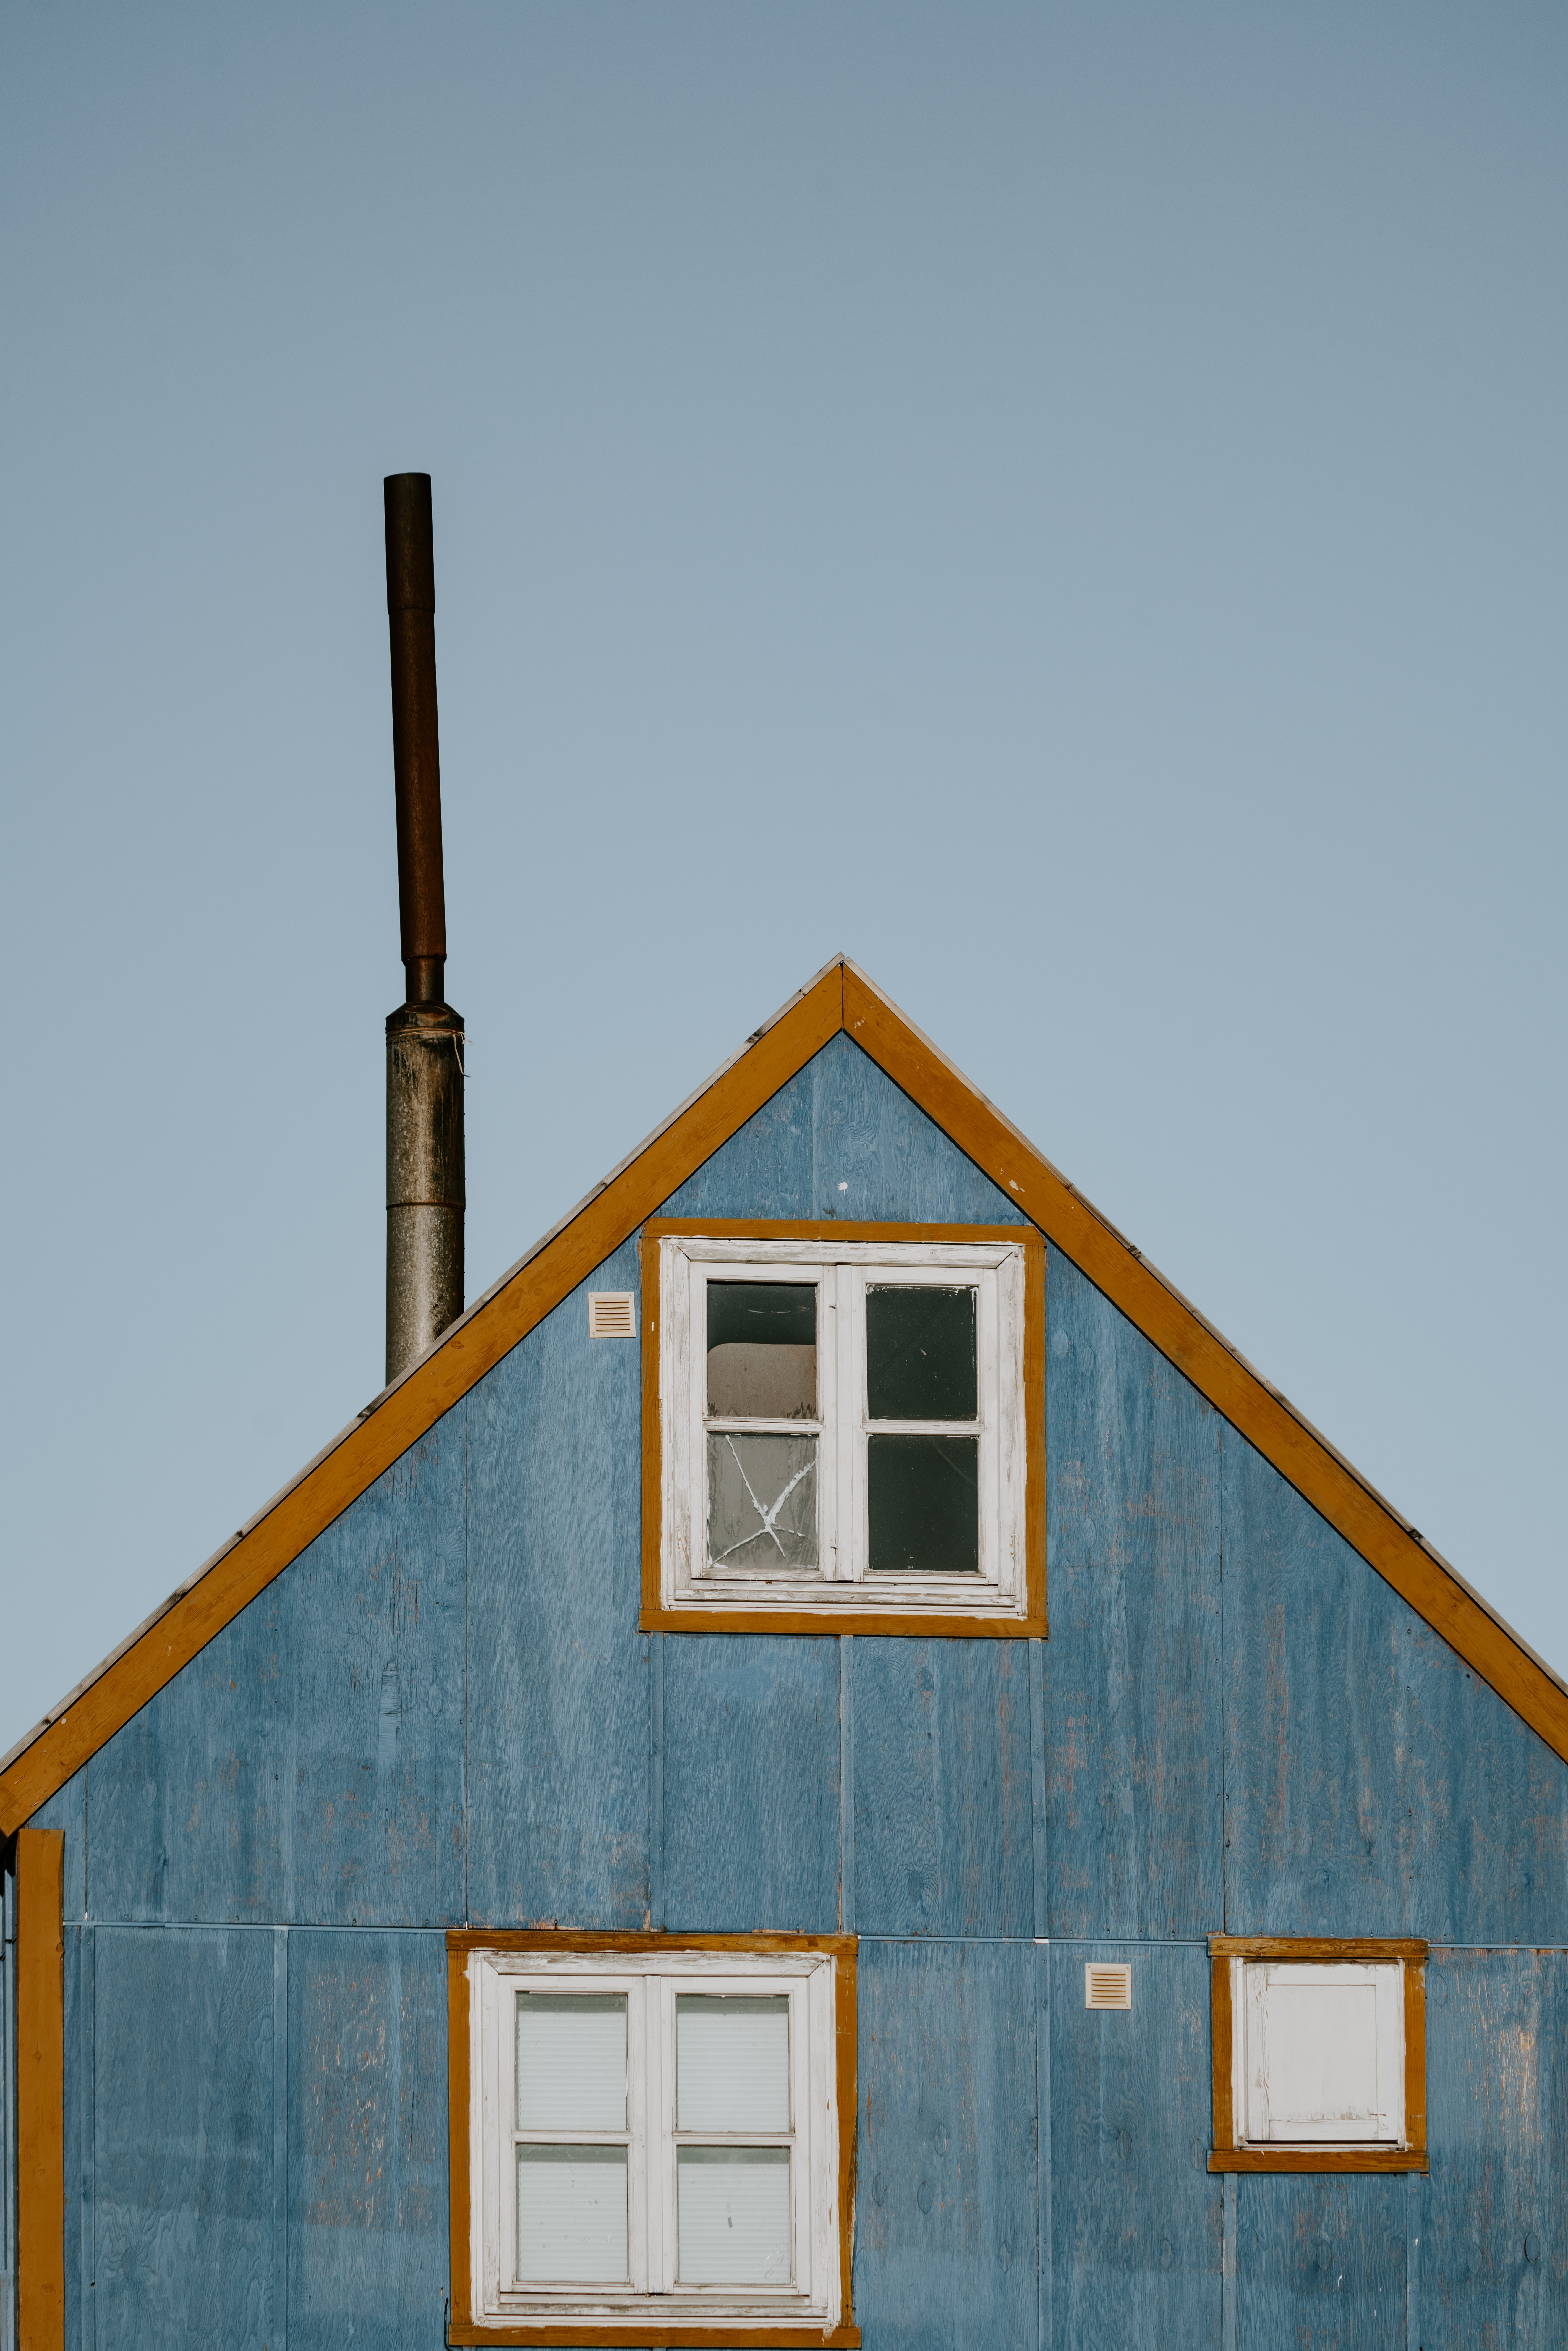 photo of blue and brown wooden house